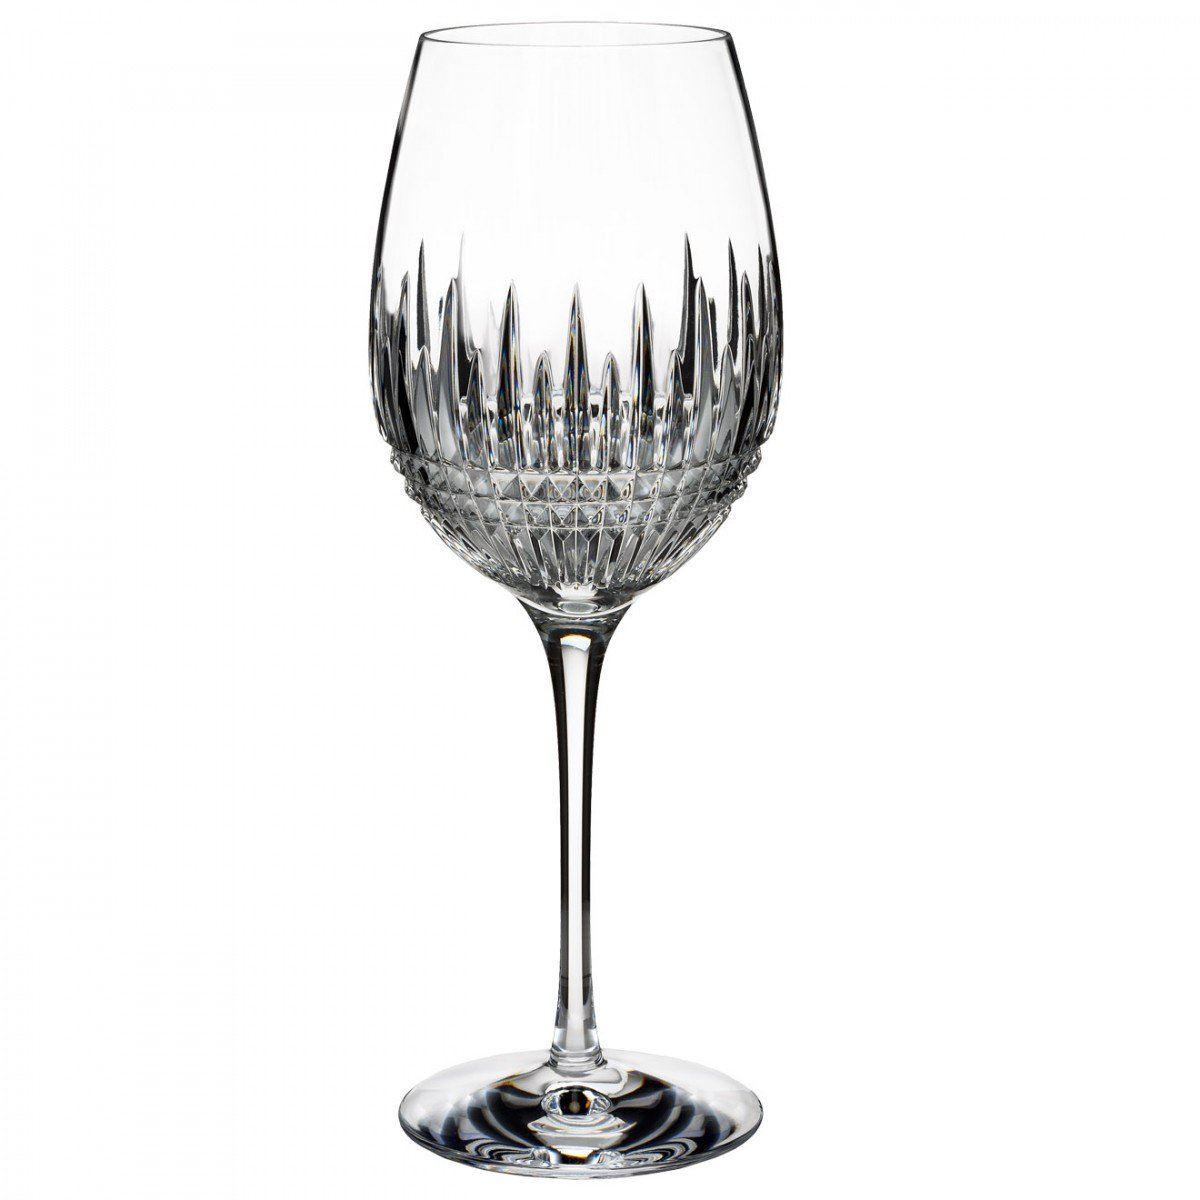 Waterford Crystal, Lismore Diamond Essence Crystal Goblet, Single